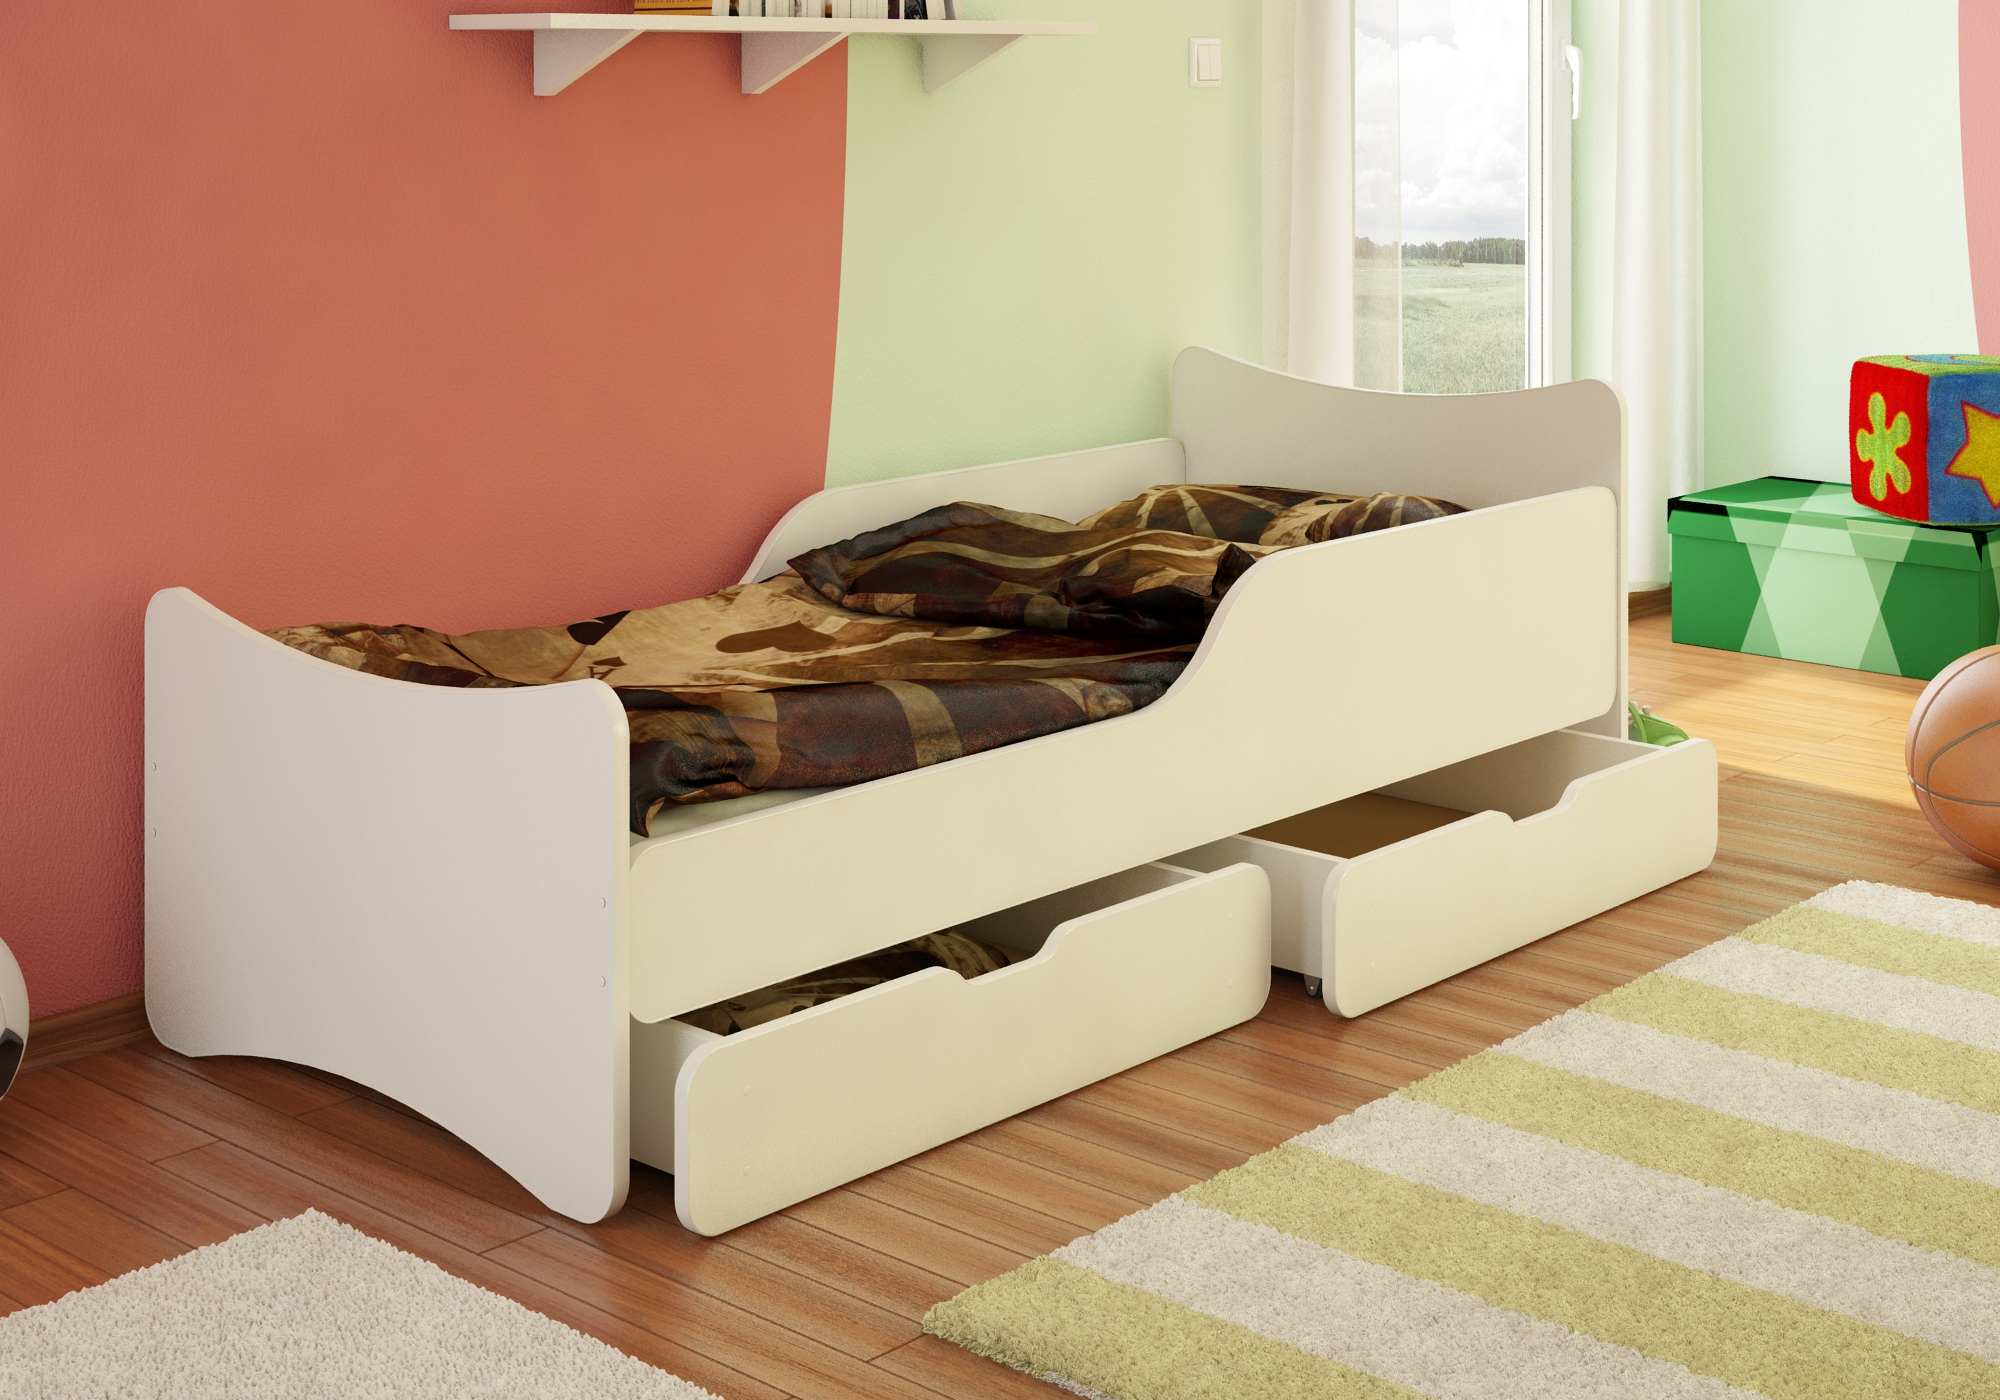 bfk bett kinderbett jugendbett wei weiss schubladen 80x180 90x180 80x200 90x200 ebay. Black Bedroom Furniture Sets. Home Design Ideas